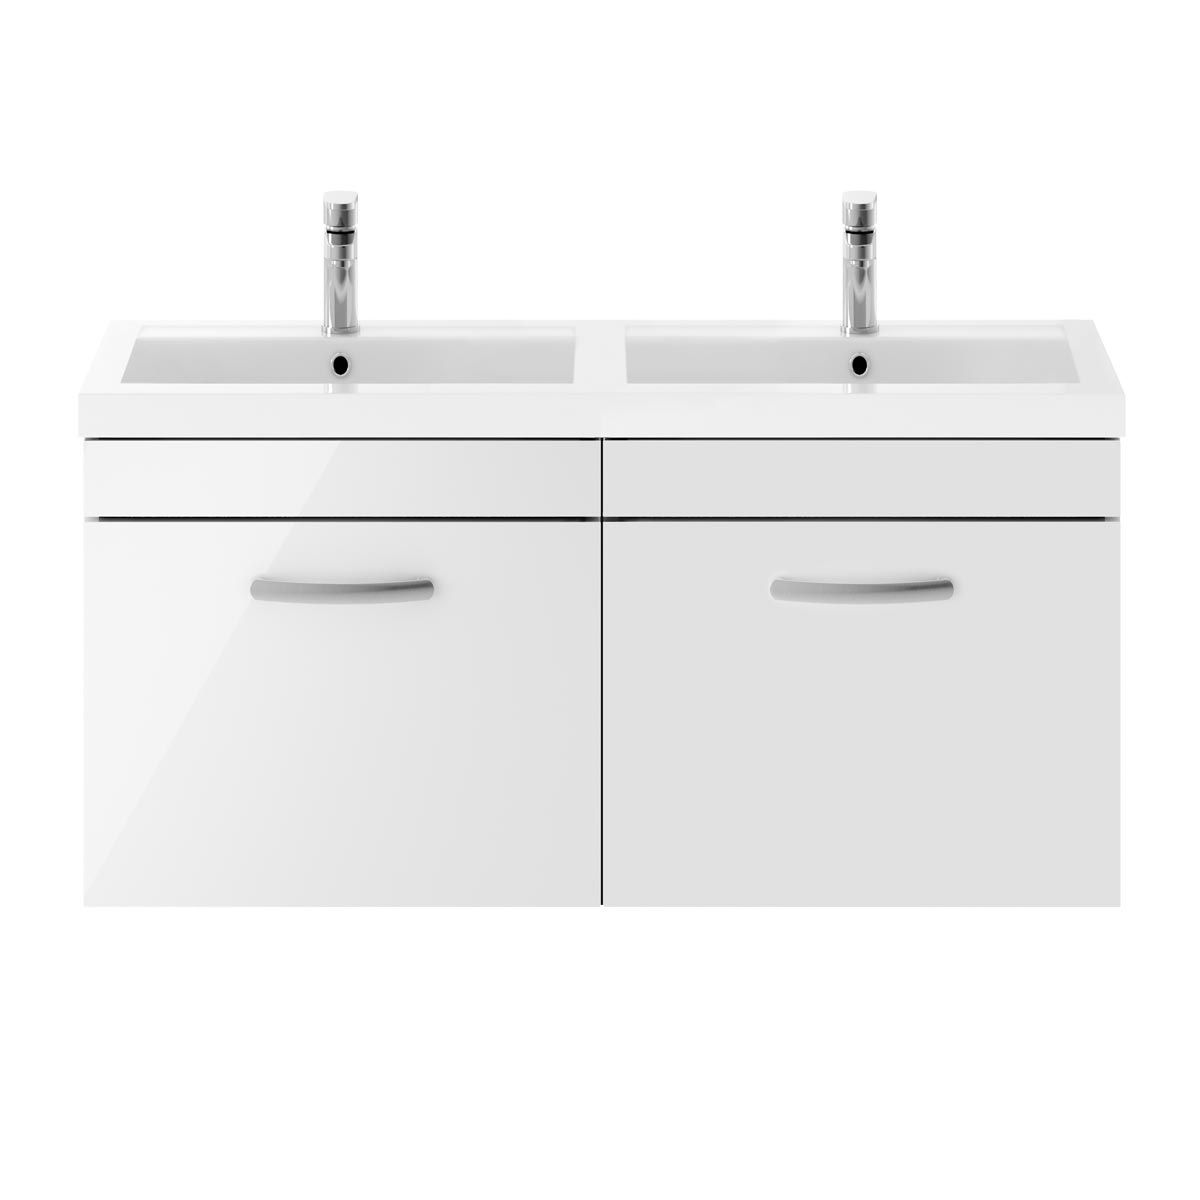 Nuie Athena Gloss White 2 Drawer Wall Hung Vanity Unit with Polymarble Double Basin 1200mm